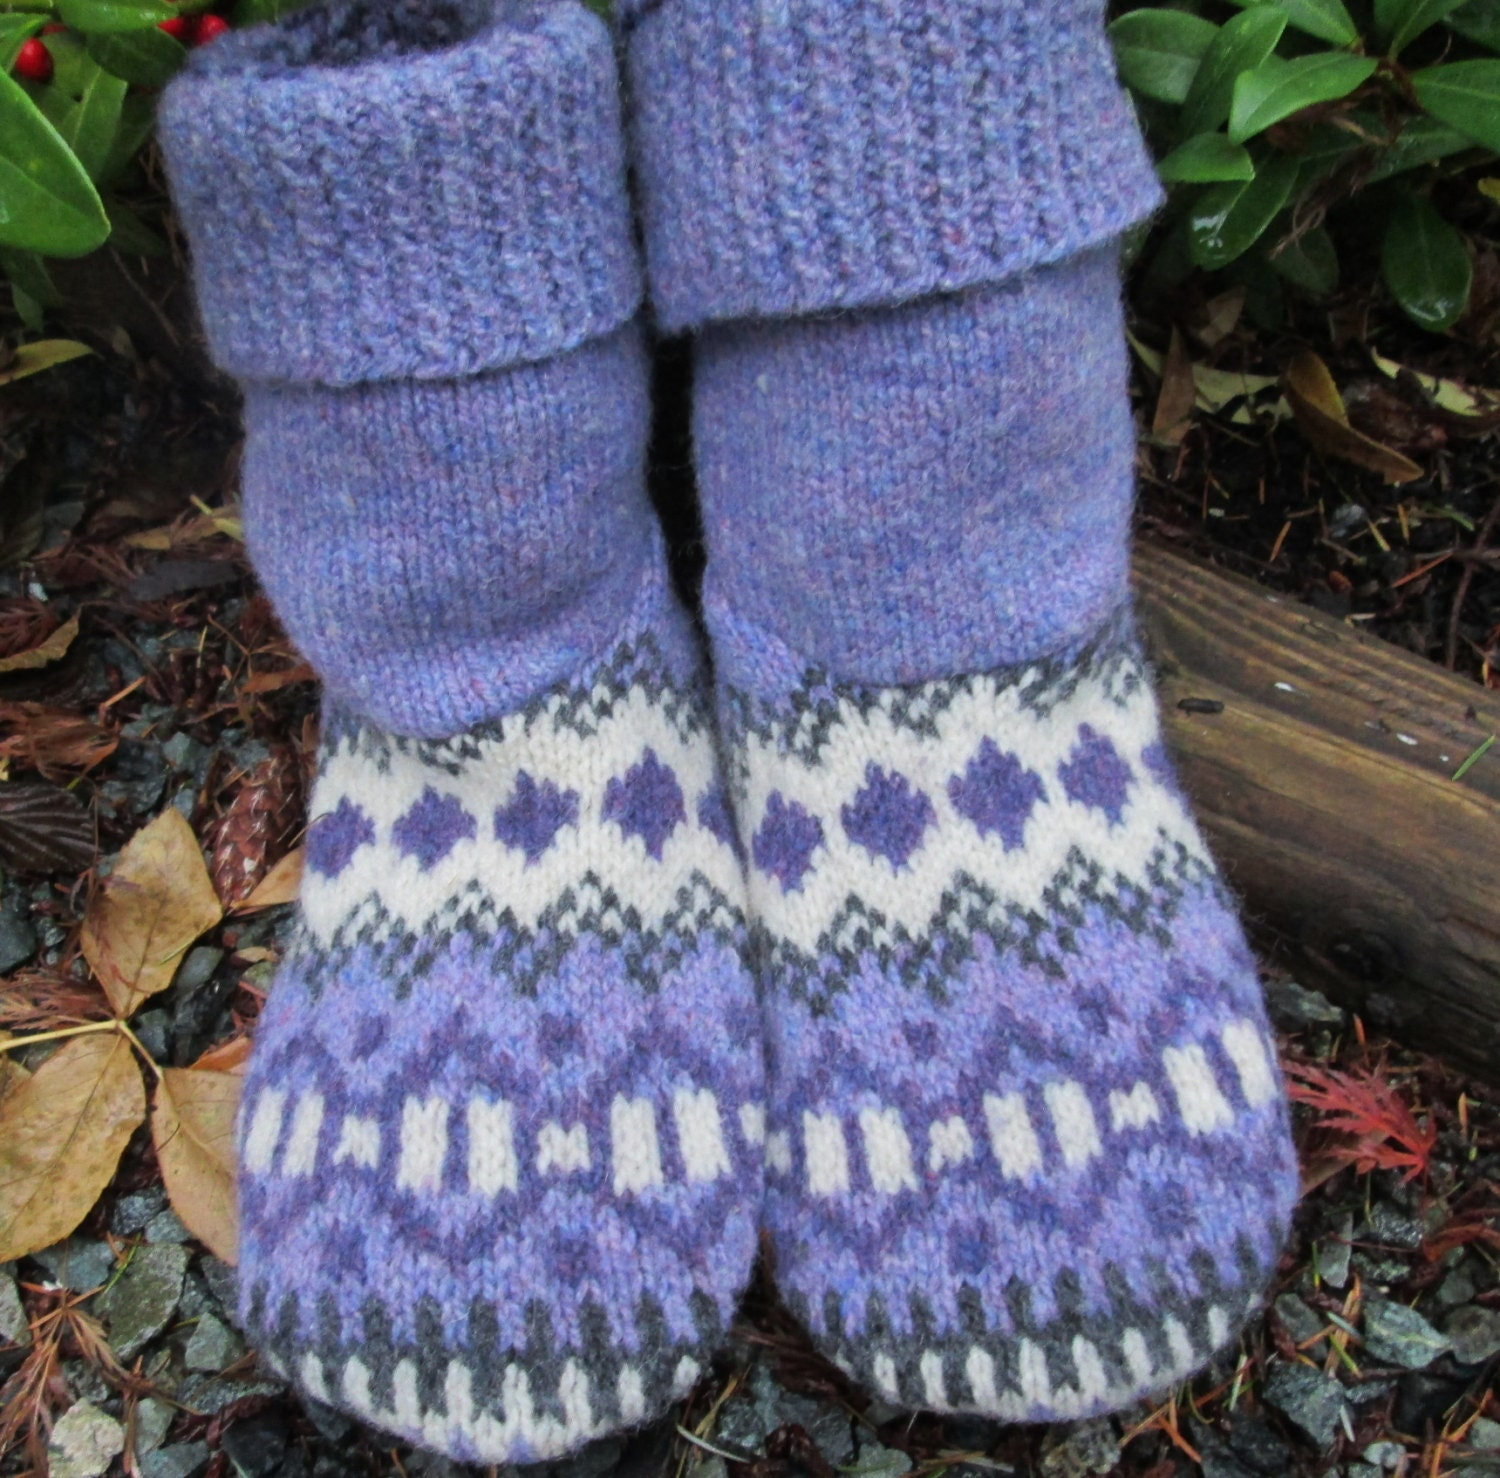 felted wool sweater slipper boots cozy warm house slippers